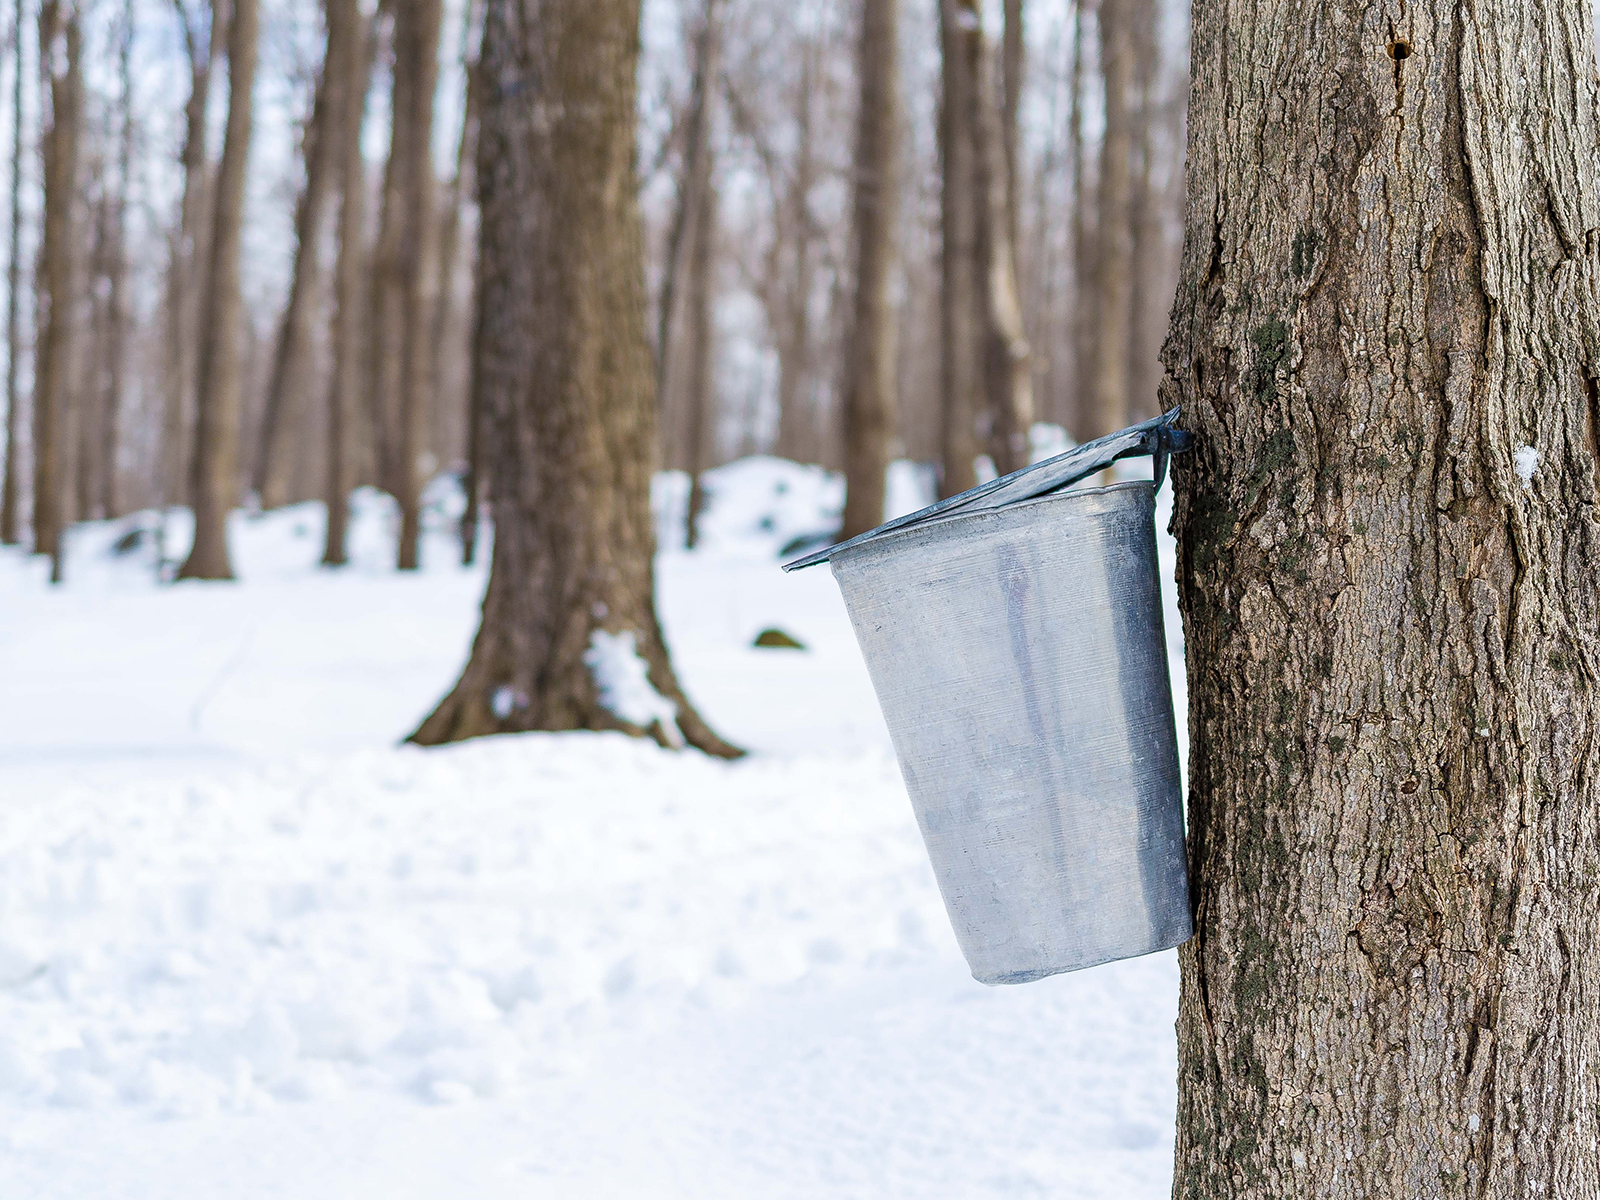 Maple Tree Sap Flowing Into Buckets